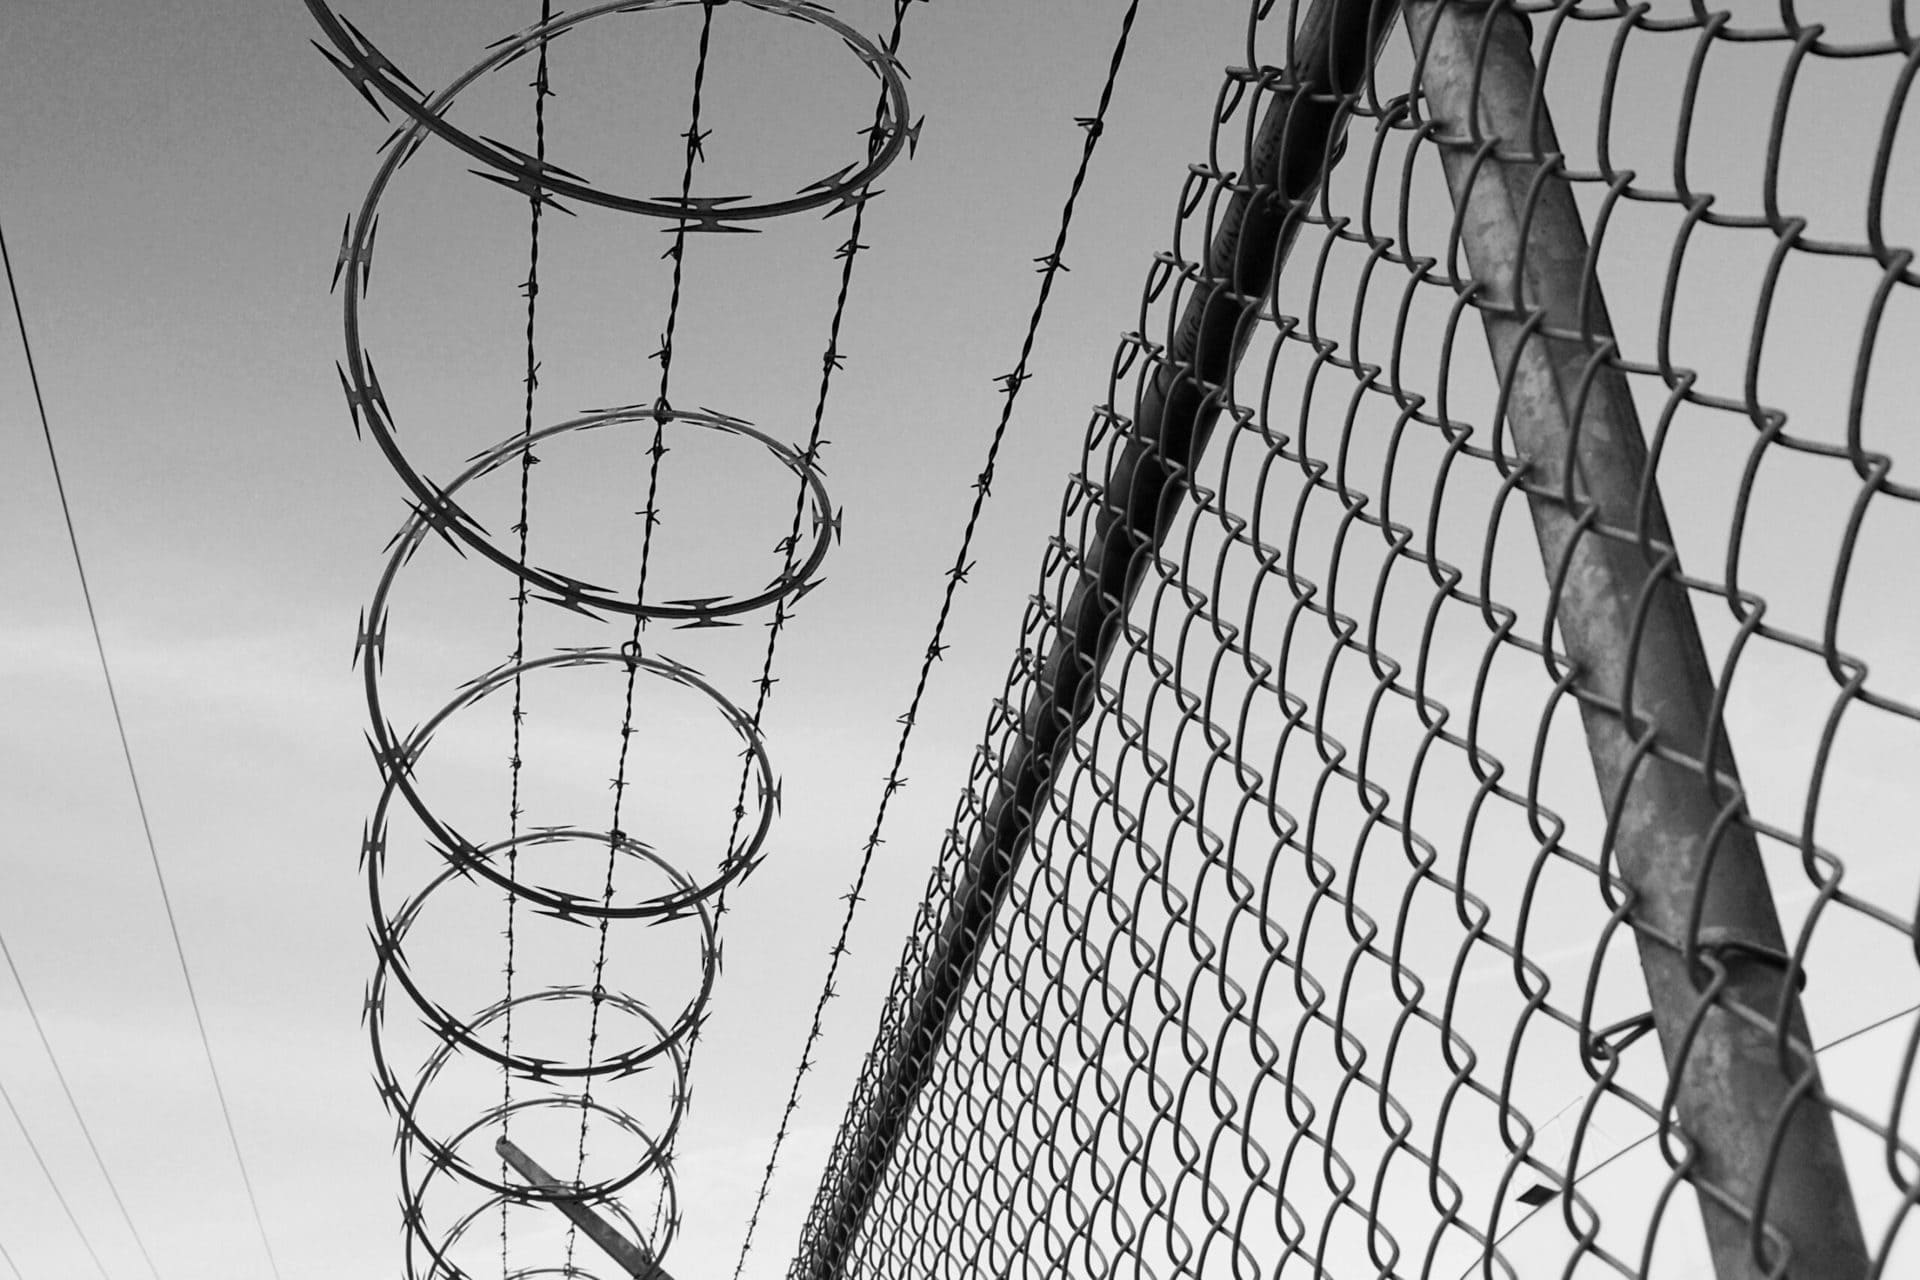 Barbed wire and wire fence black and white with sky